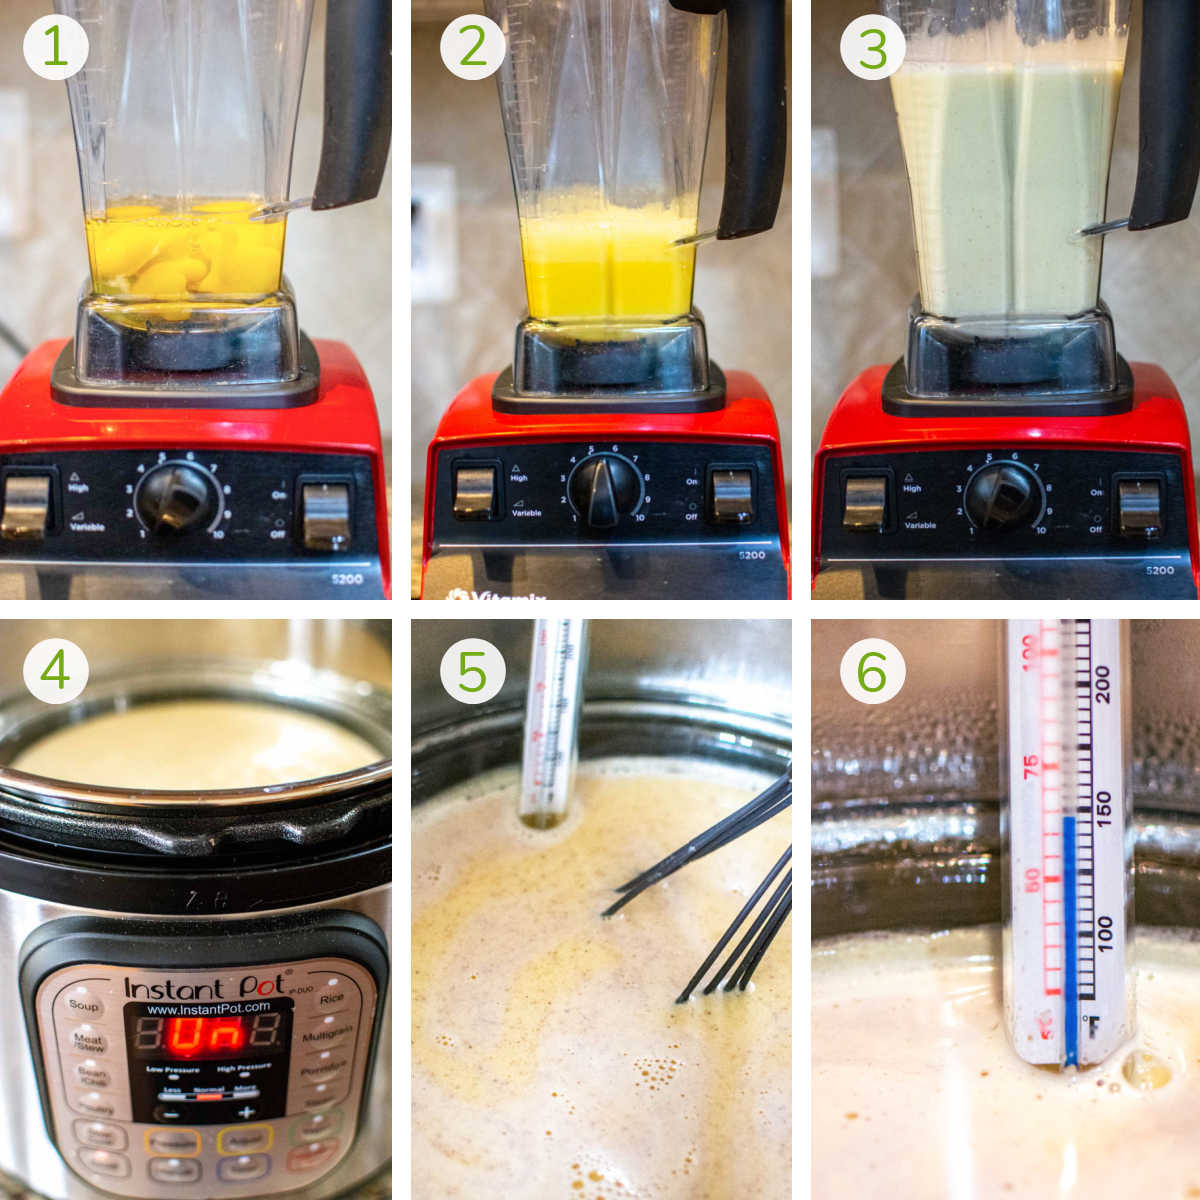 six process photos showing mixing the eggs in the Vitamix and then heating it in the instant pot.